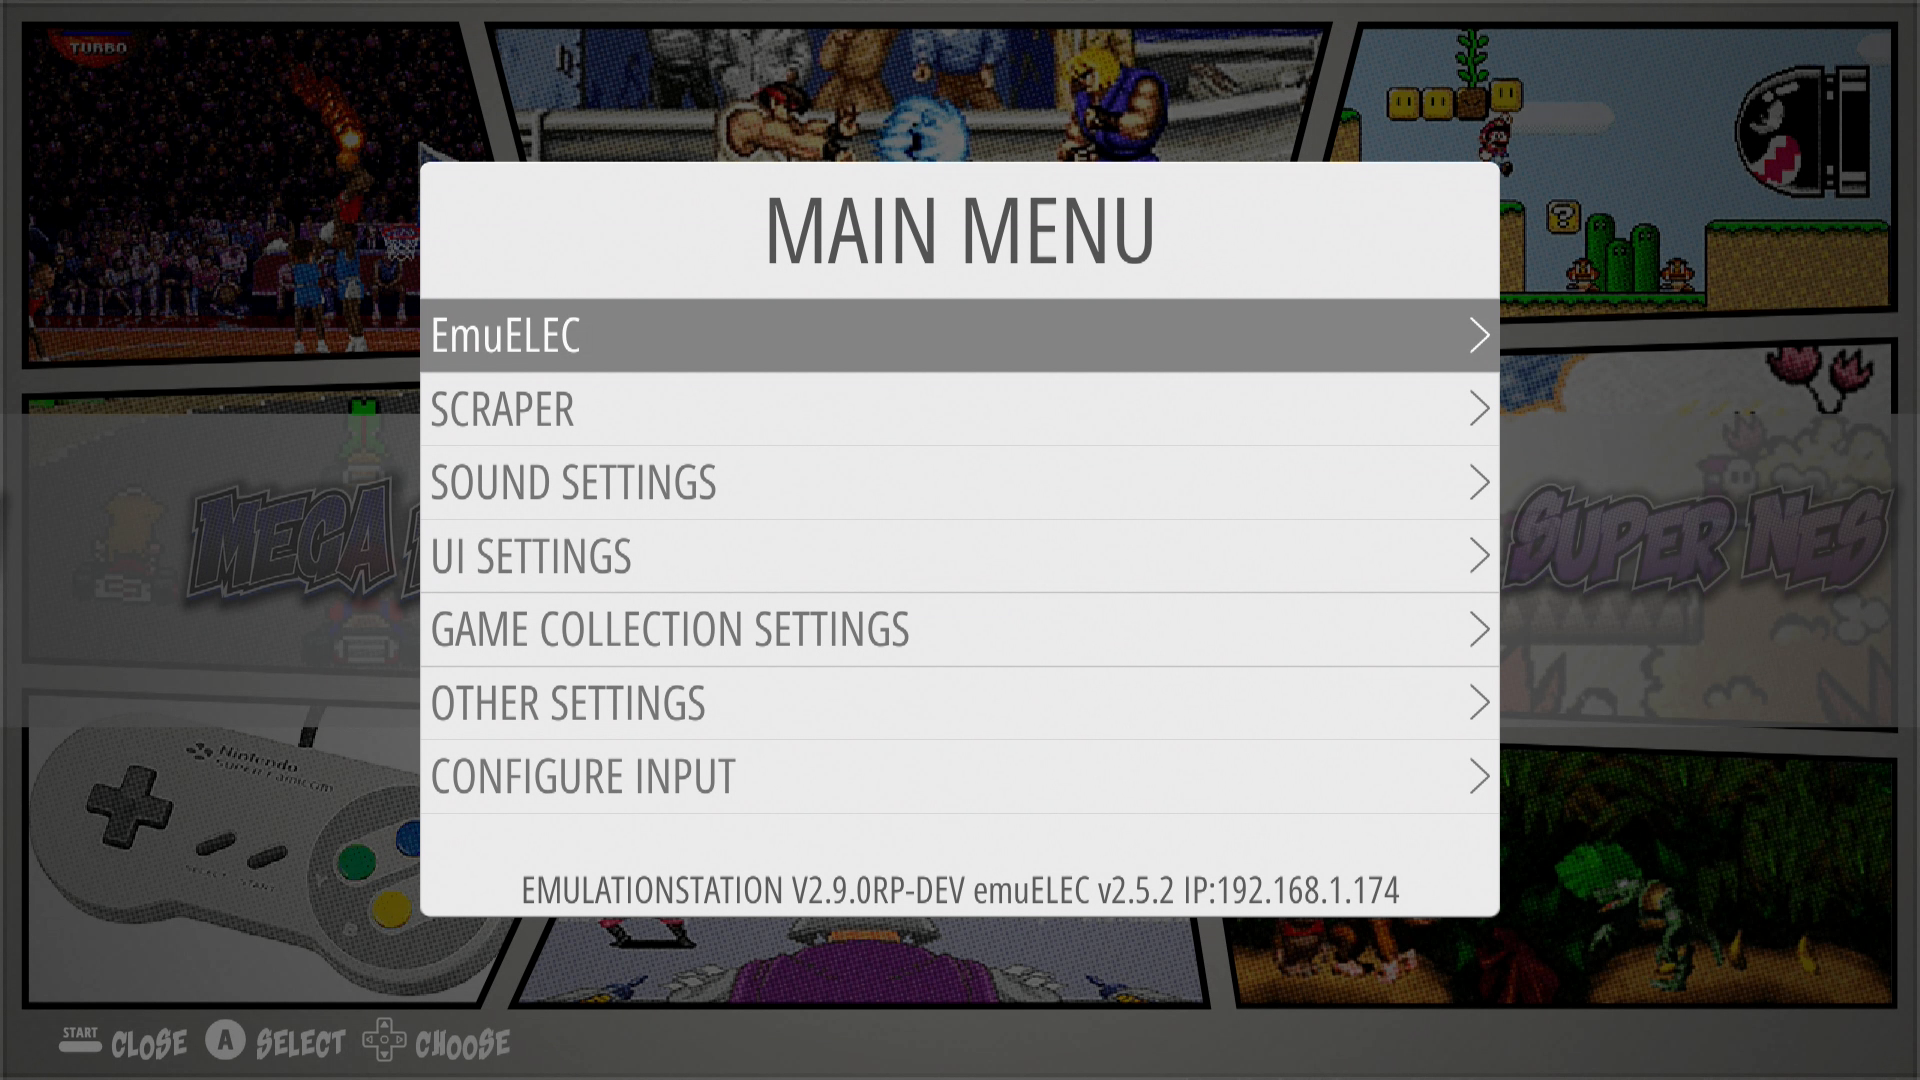 Figure 1 - Main Menu for the emuELEC emulation operating system